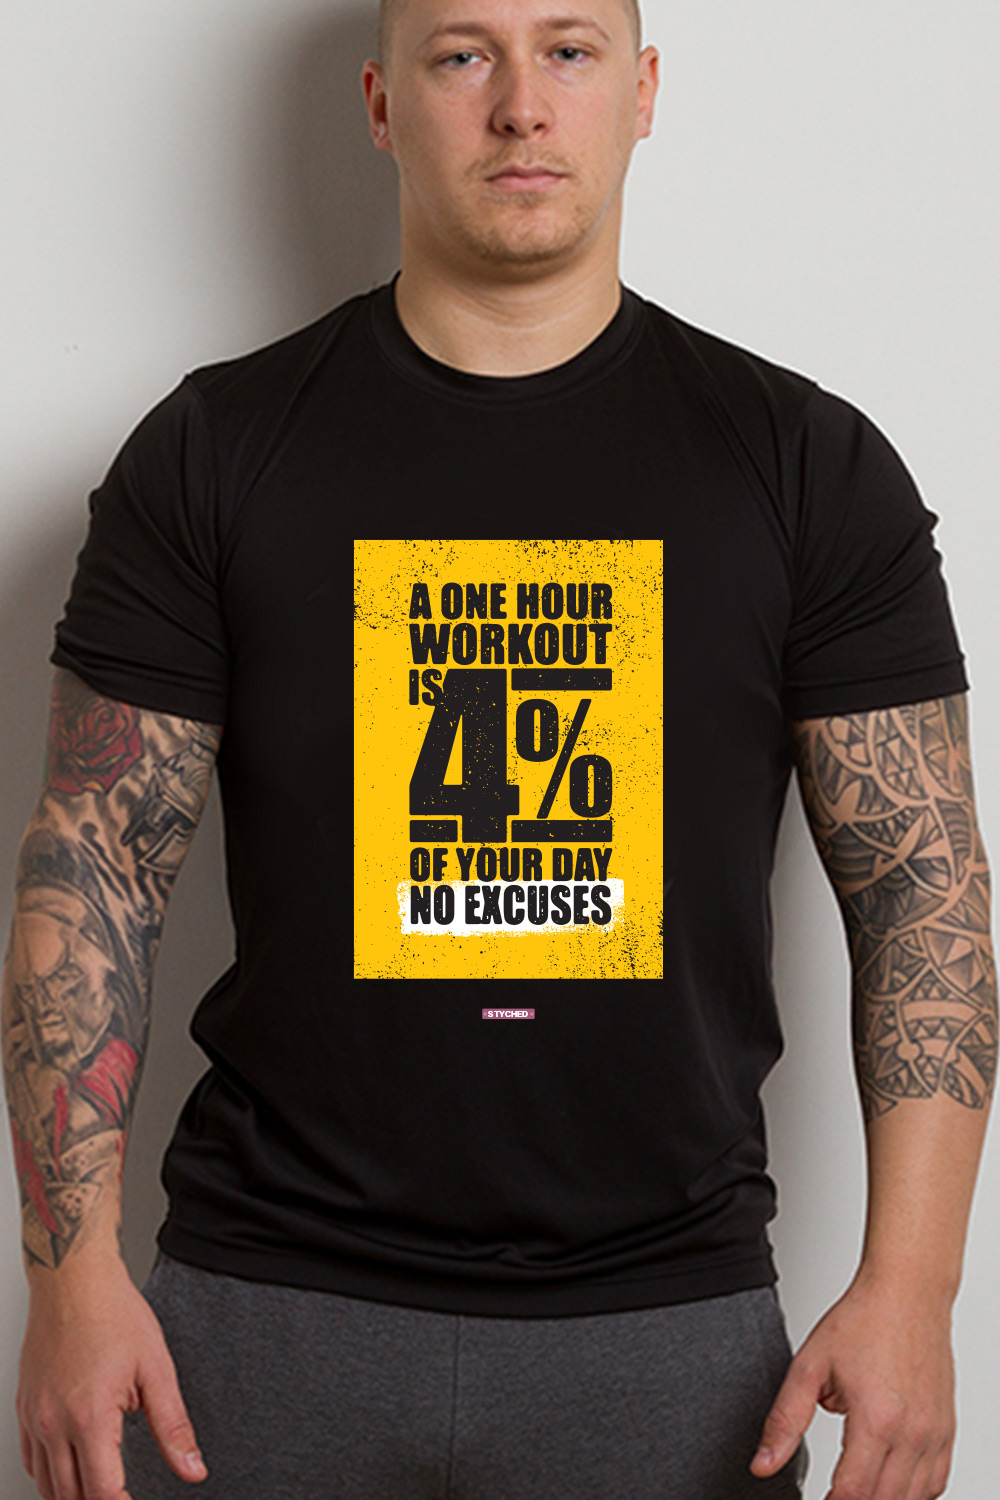 26fe1ec2c WORKOUT, A One Hour Workout is 4% of your Day. No Excuses. Graphic T-Shirt  Black Color